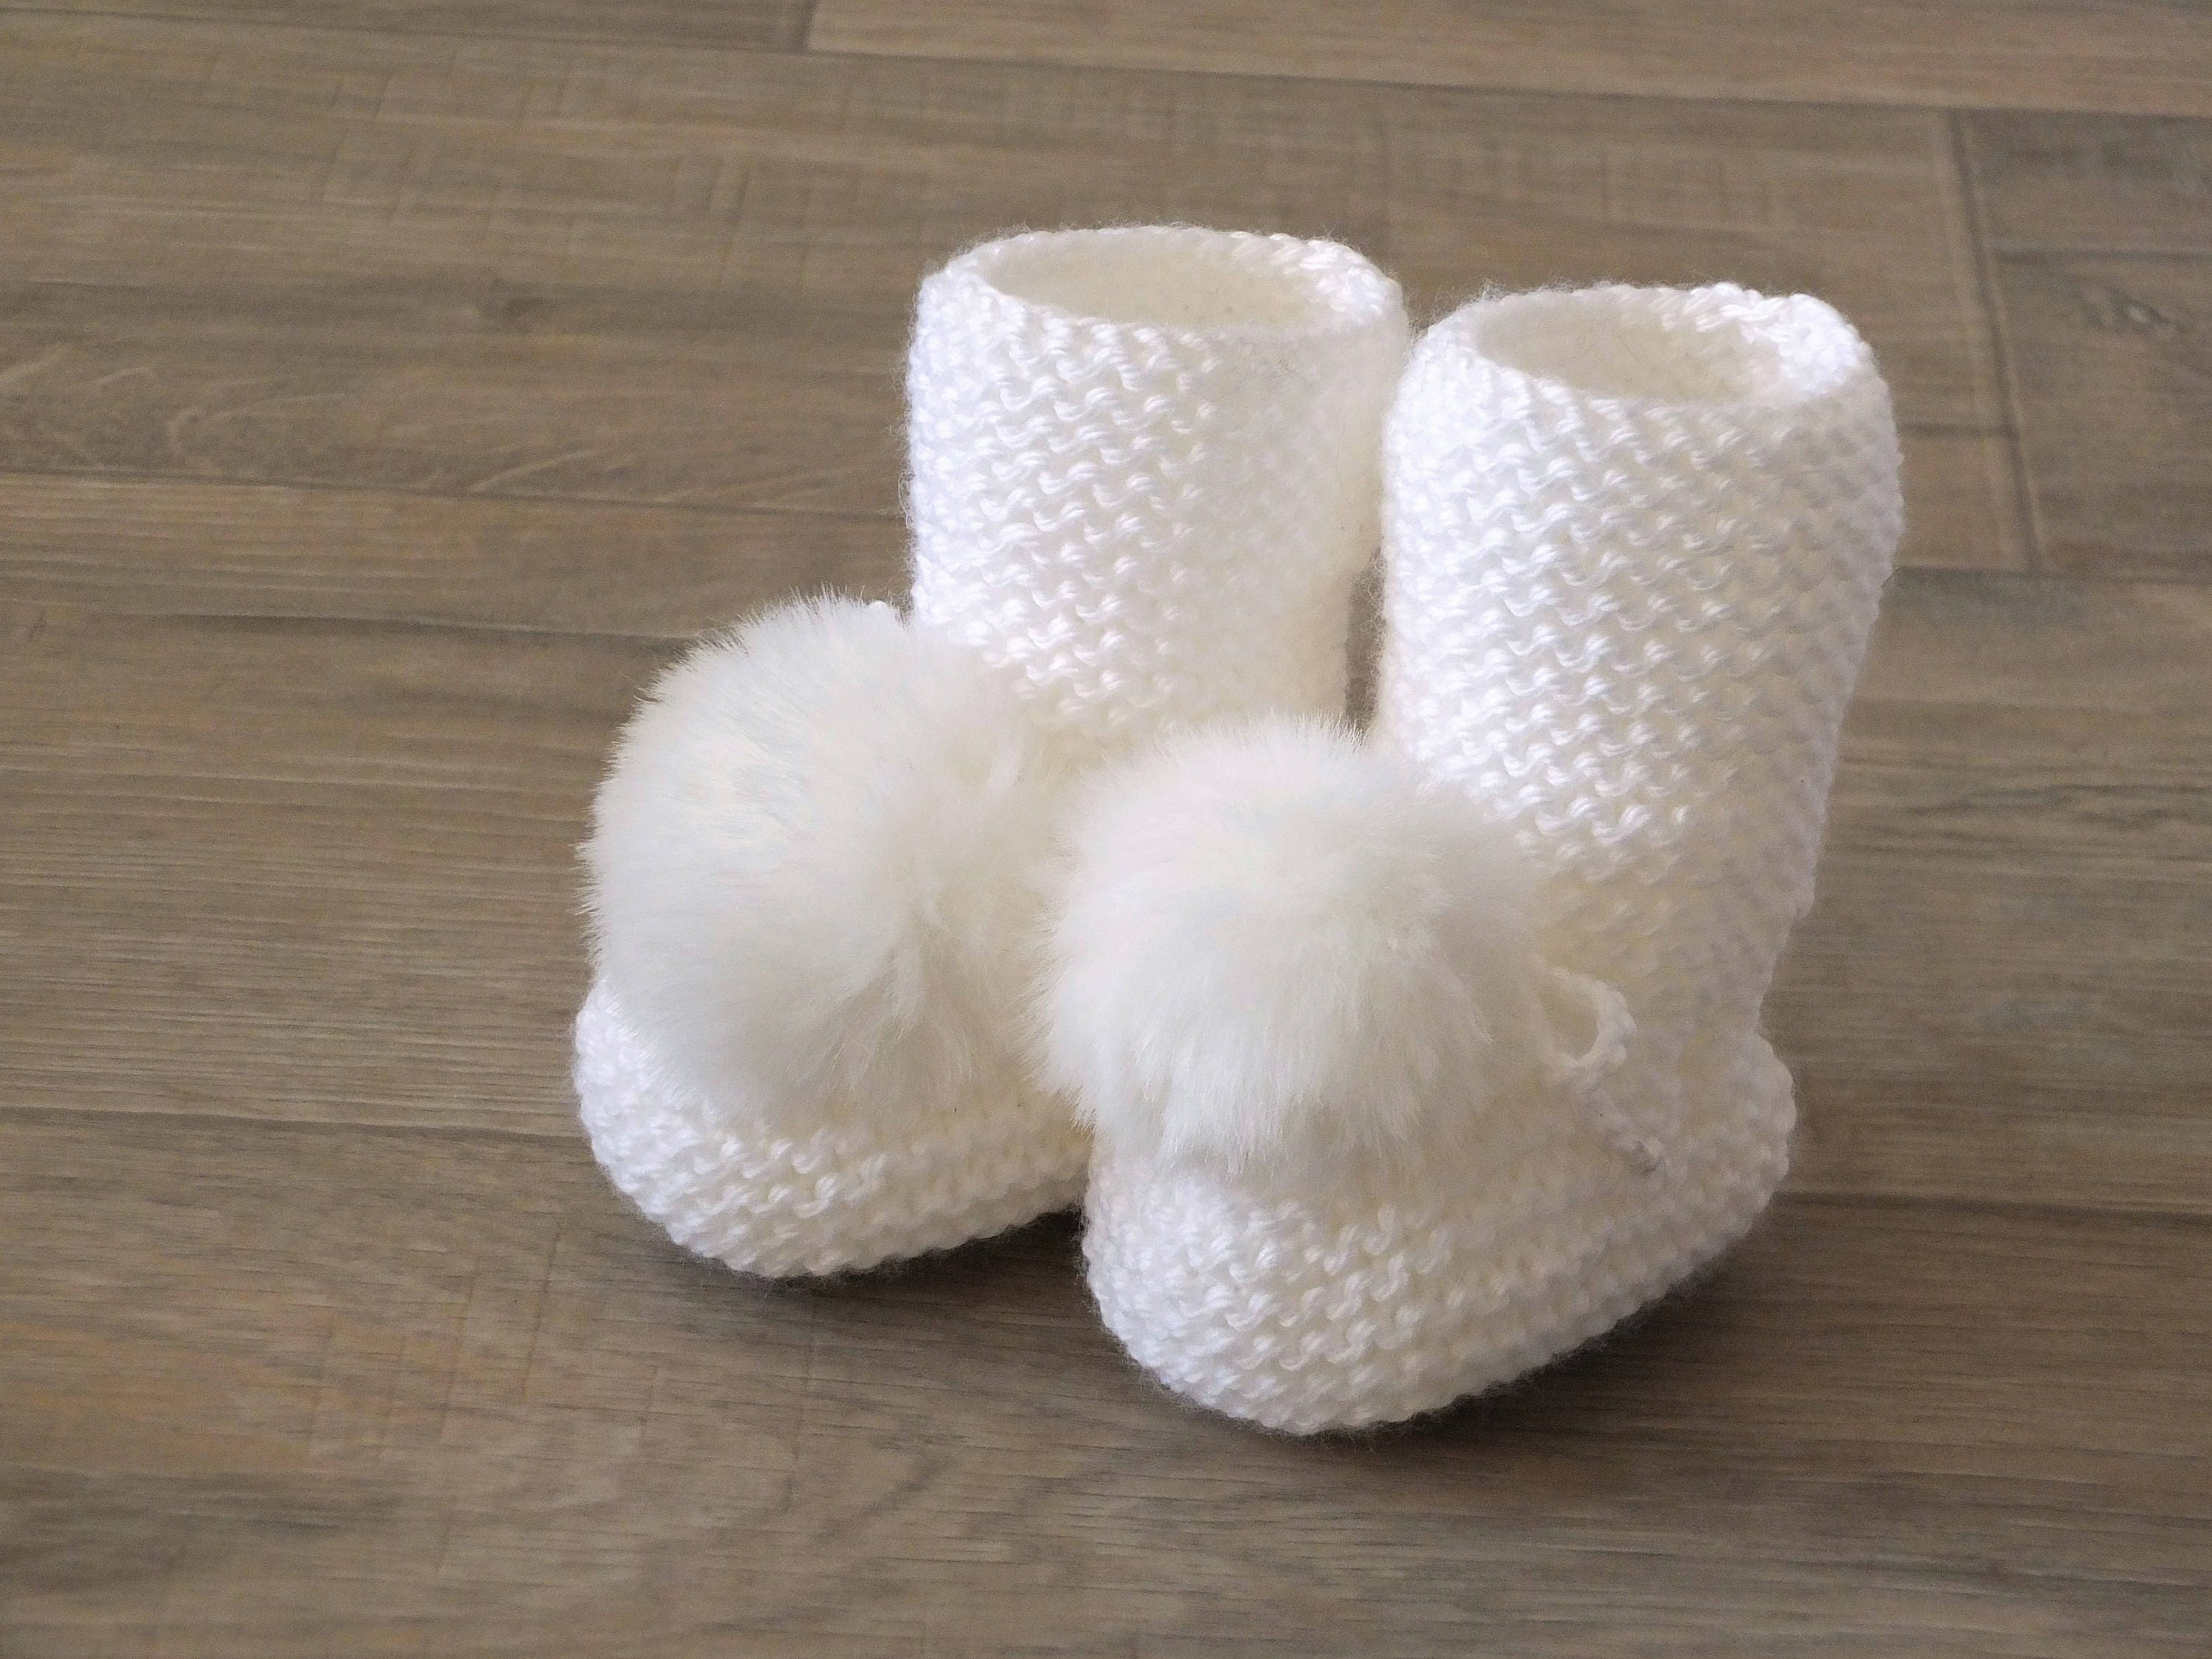 d7f782ddbf7d7 White Booties with fur pom poms - Knitted baby booties - White Baby boots -  Baby shoes - Baby gift - Gender Neutral booties - Baby socks